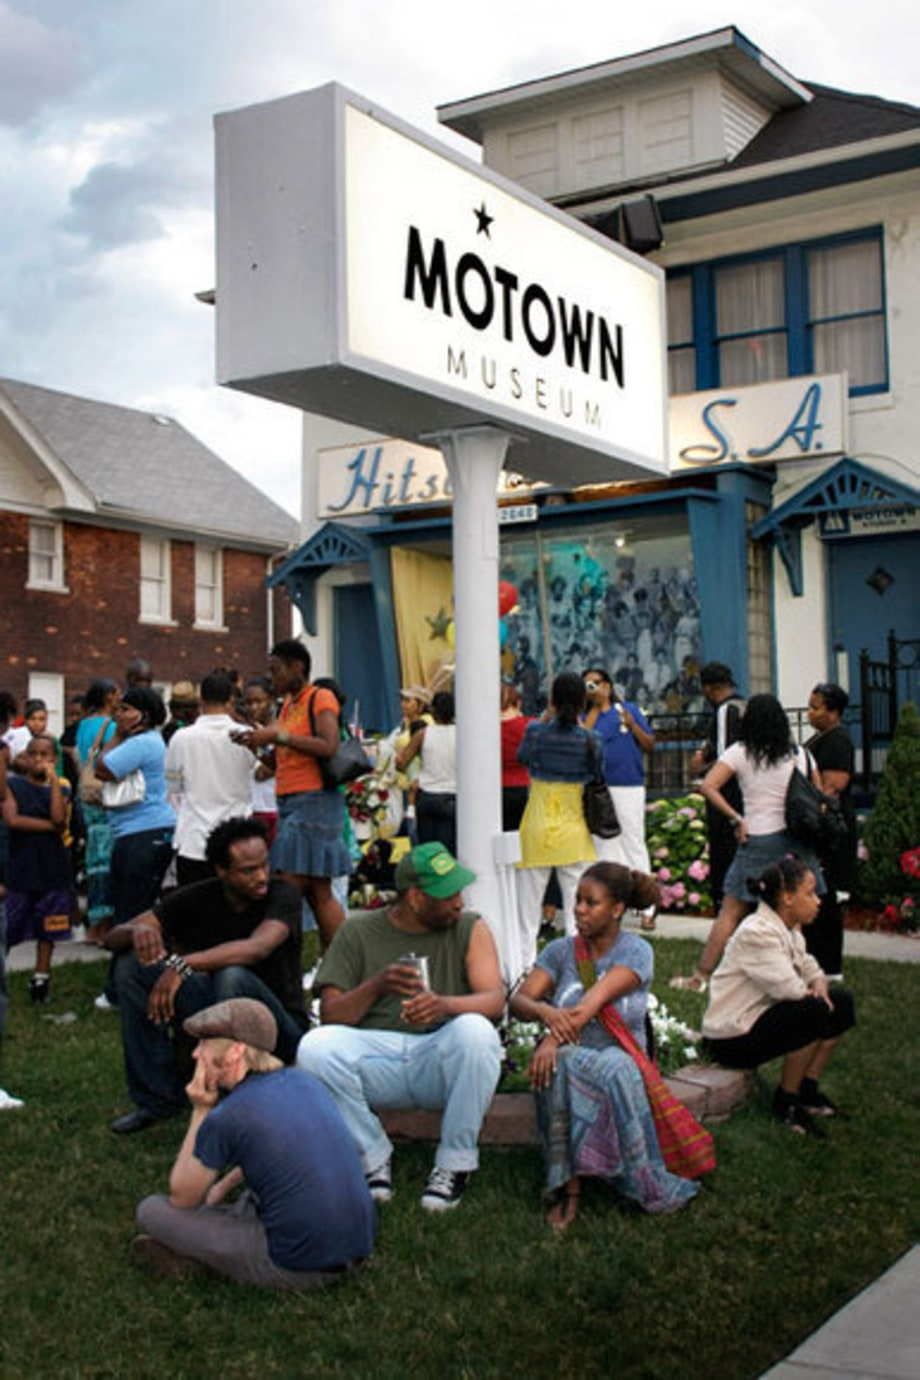 Michael Jackson Remembered: Detroit, Michigan: Fans at Motown's Hitsville U.S.A.